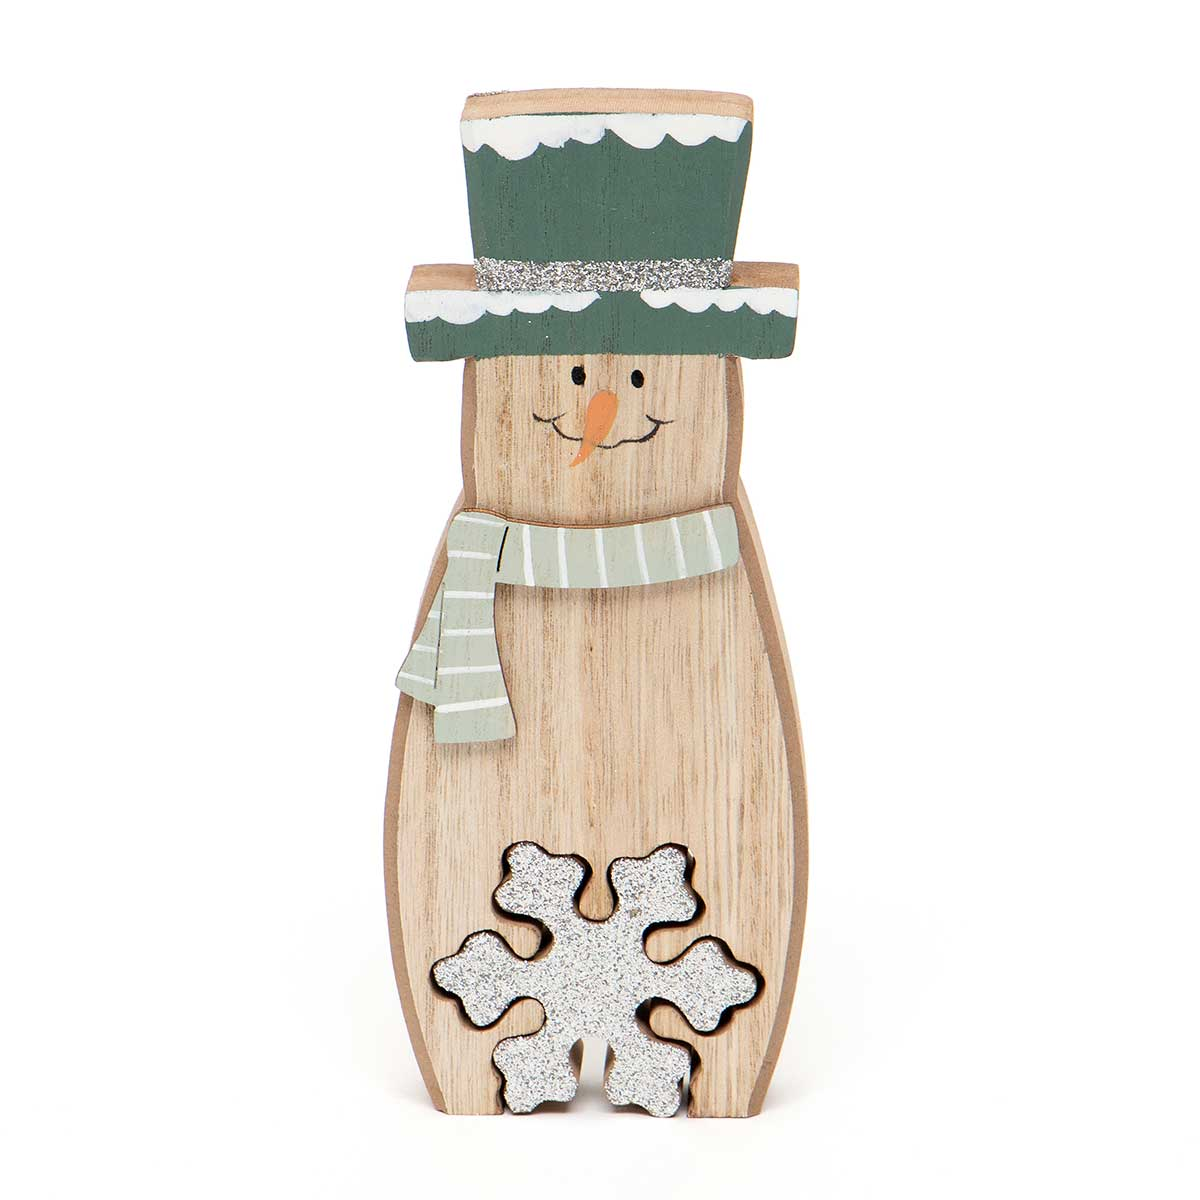 WOOD SNOWMAN WITH GLITTER